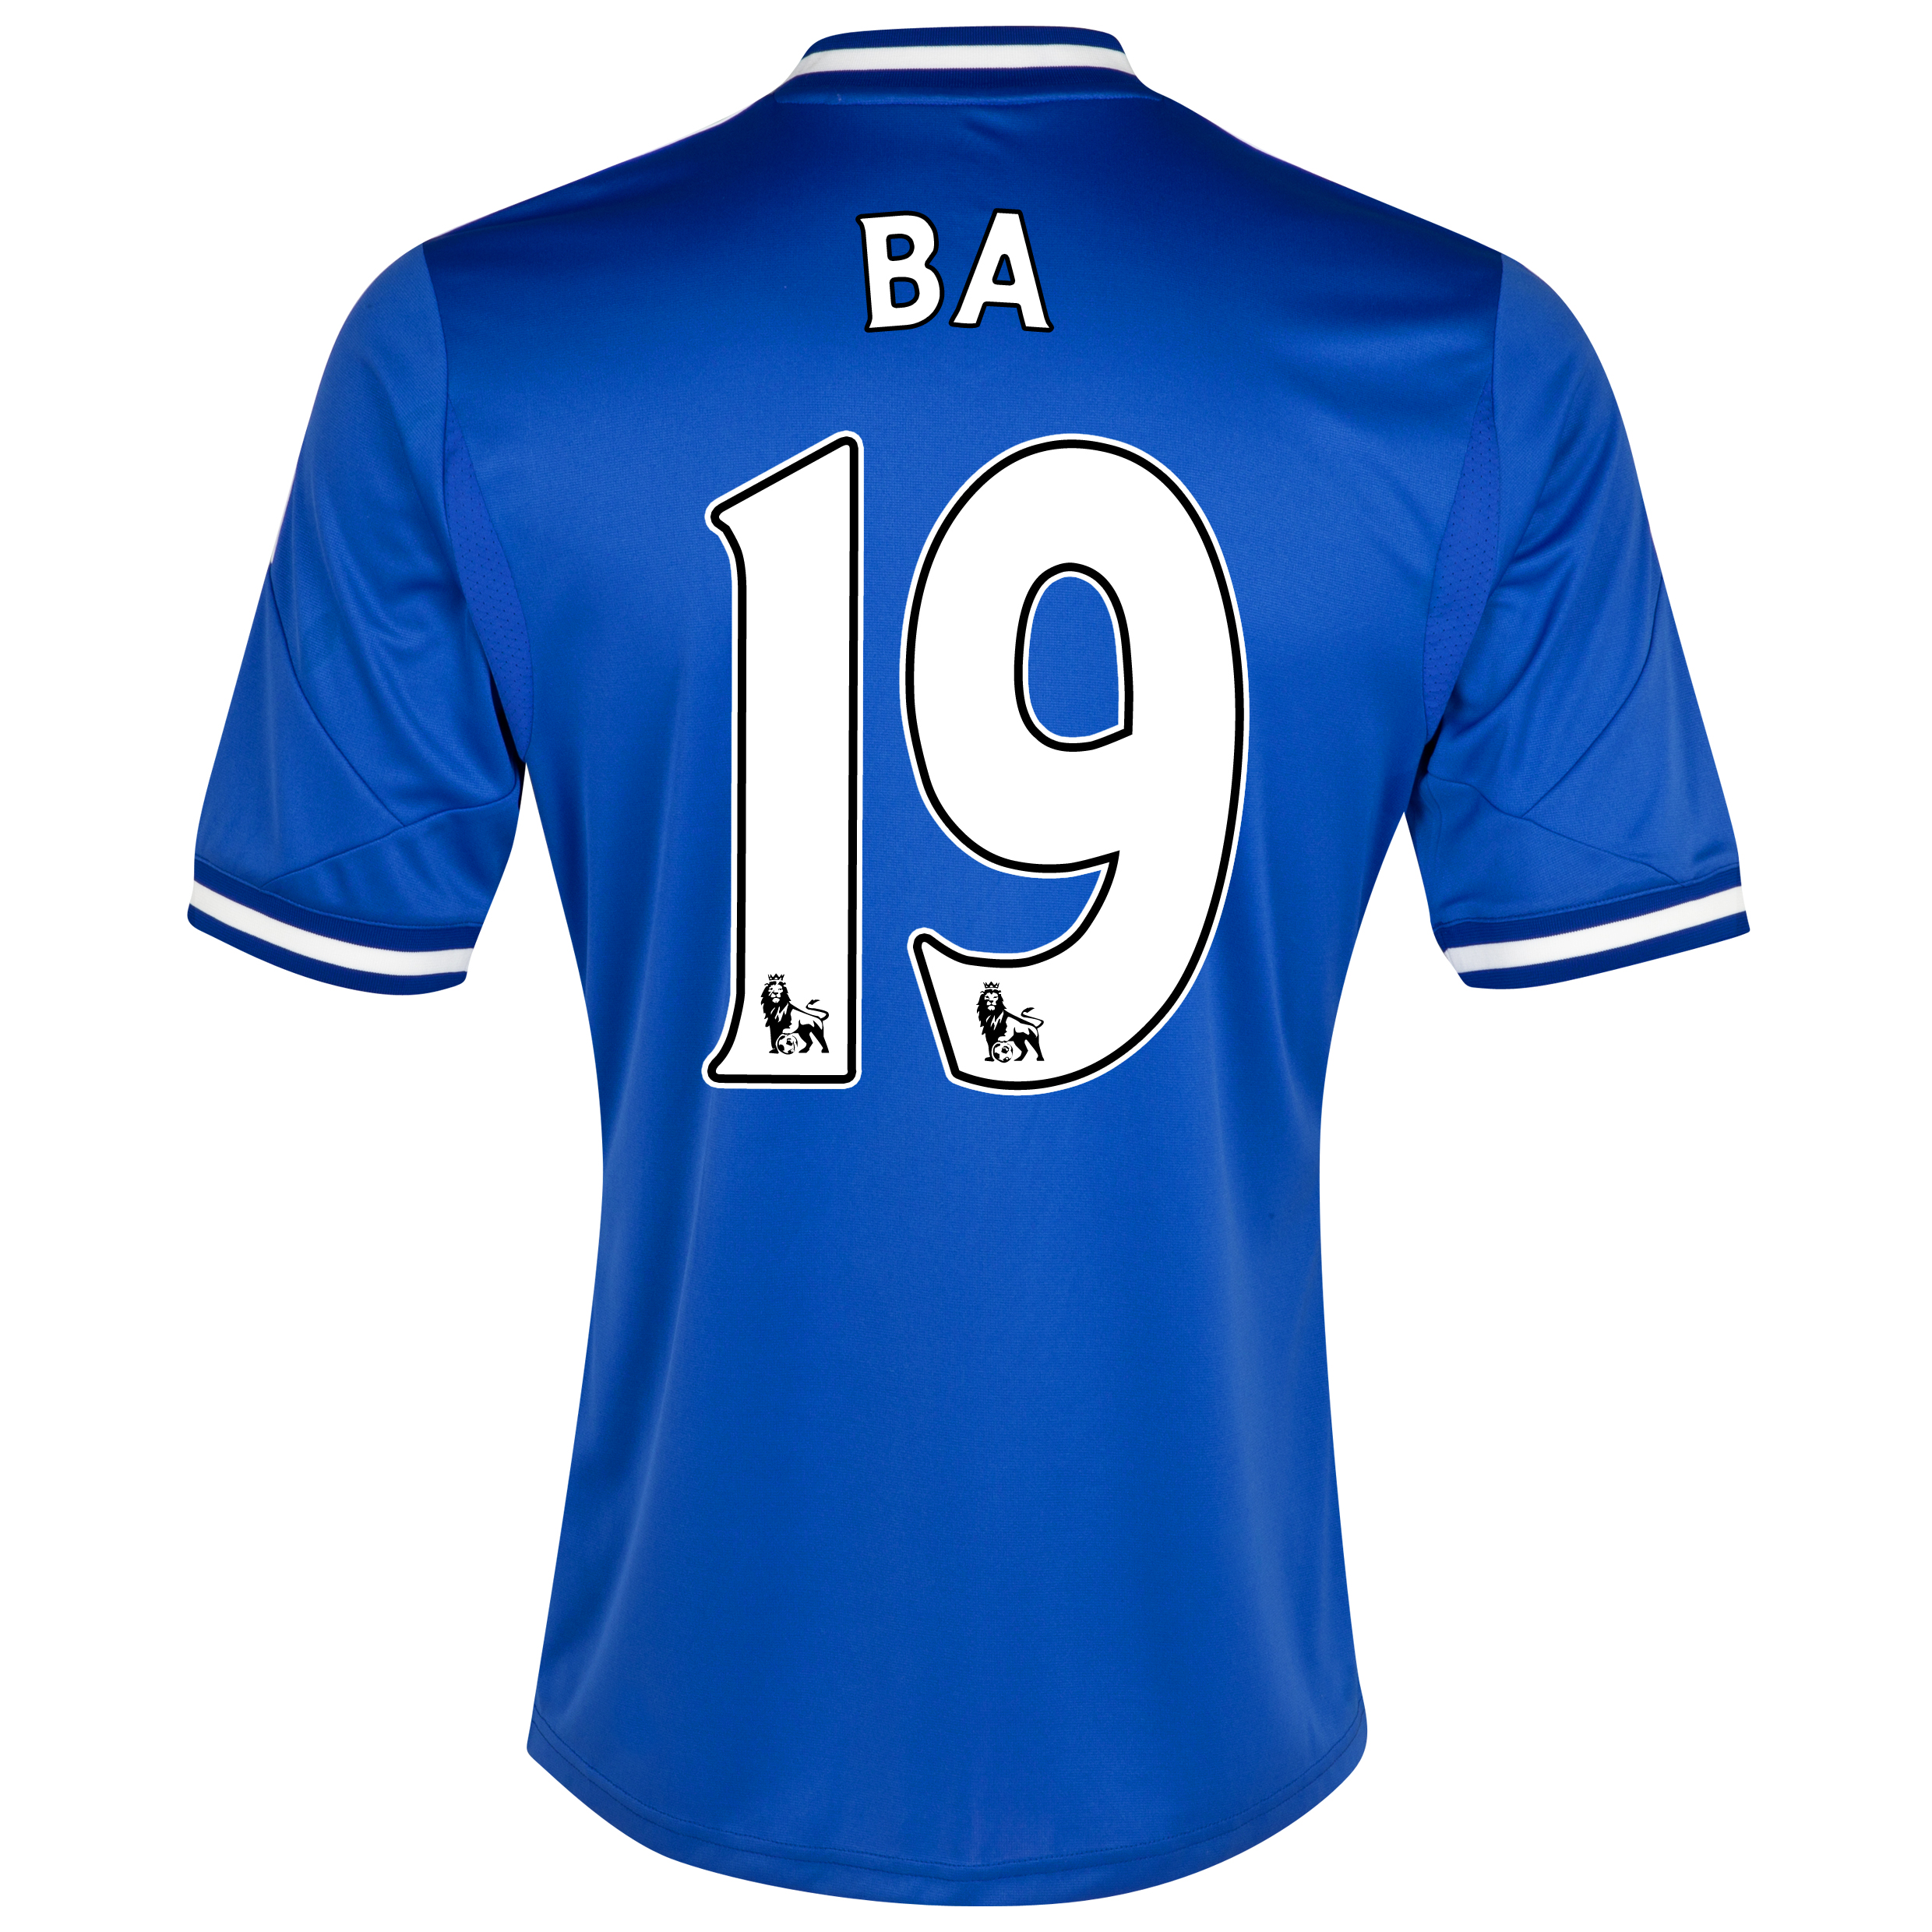 Chelsea Home Shirt 2013/14 with Ba 29 printing